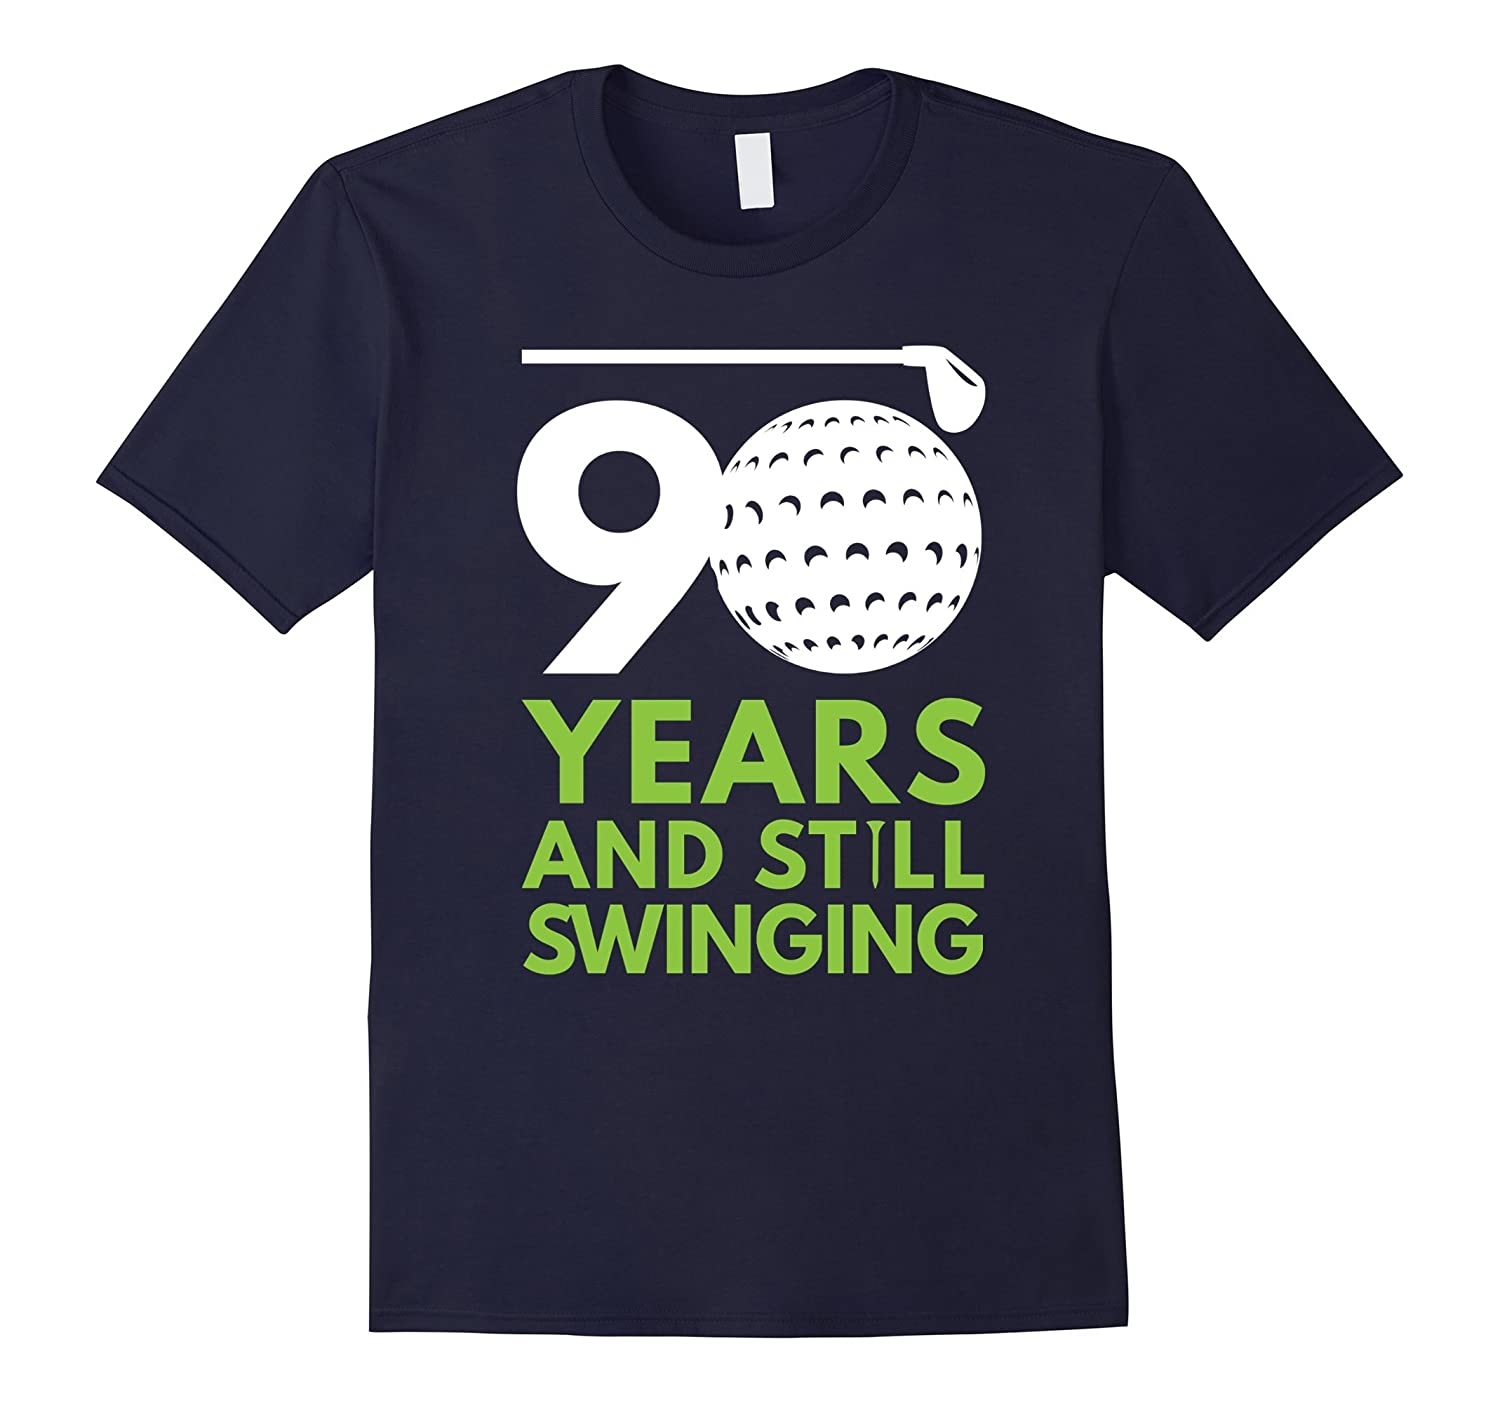 90 Years and Still Swinging Funny Golf Club Birthday Tee-Vaci